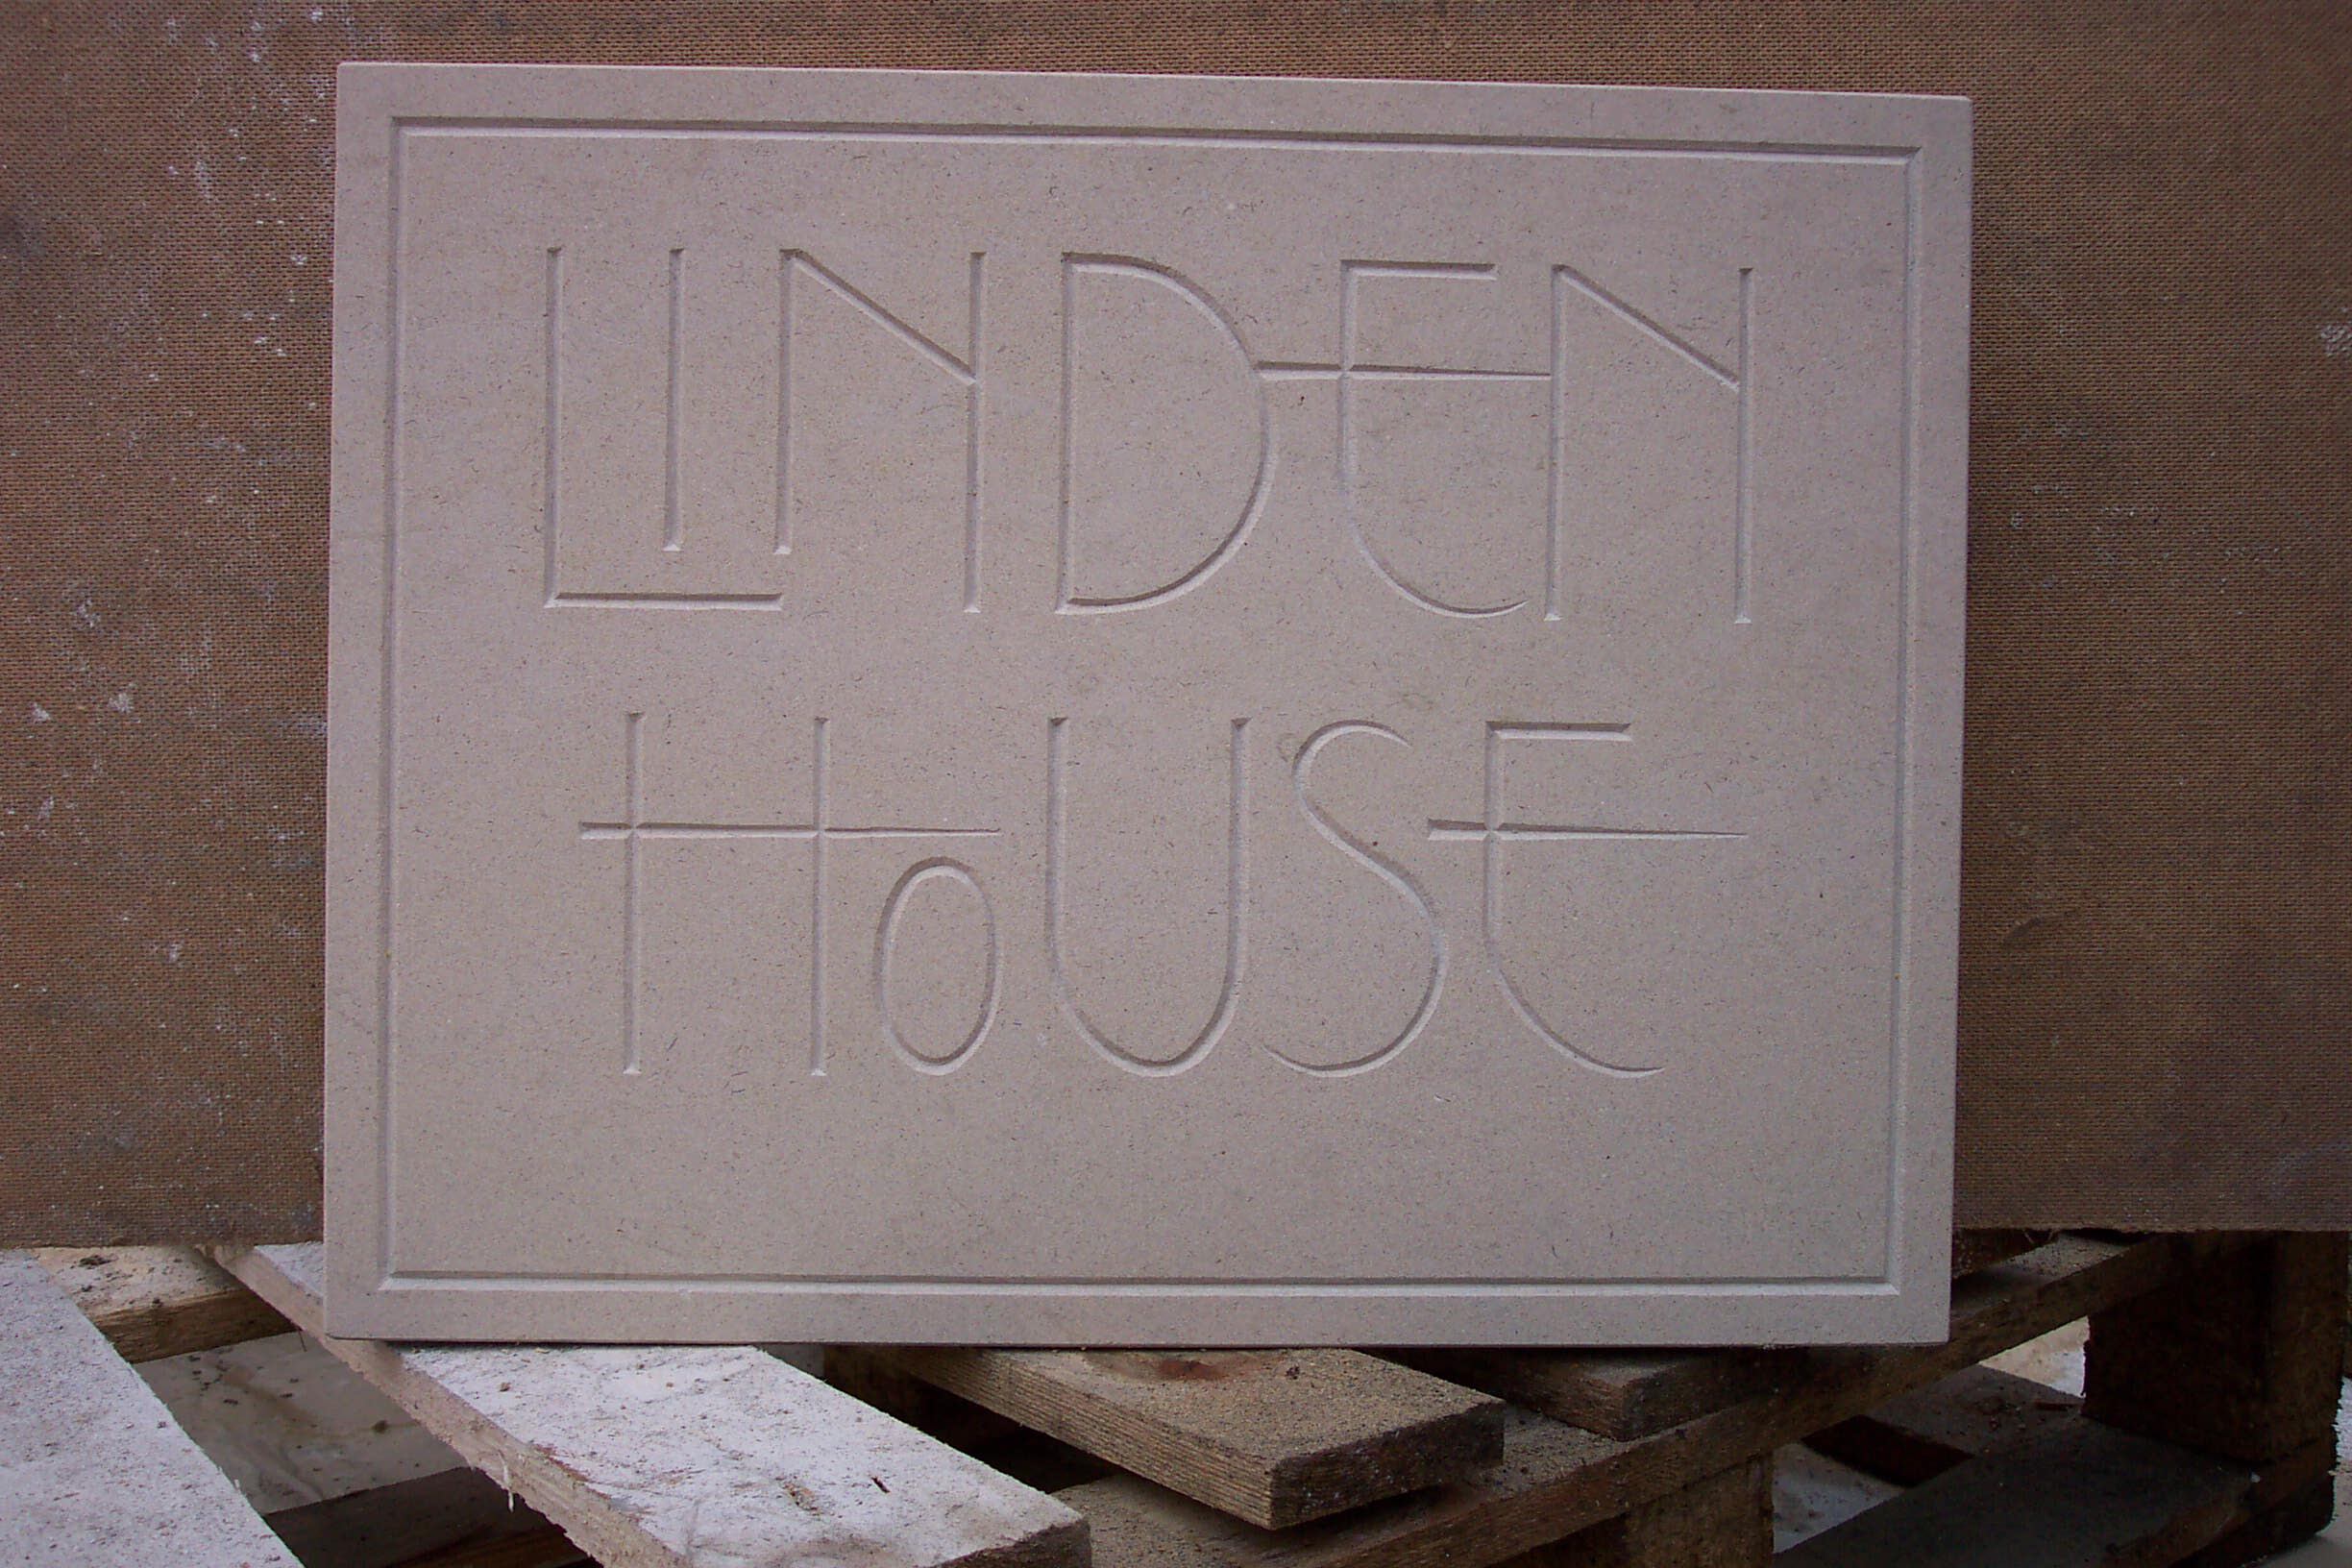 sandstone cross- Corn exchange ips -fire place westley rd 007.jpg